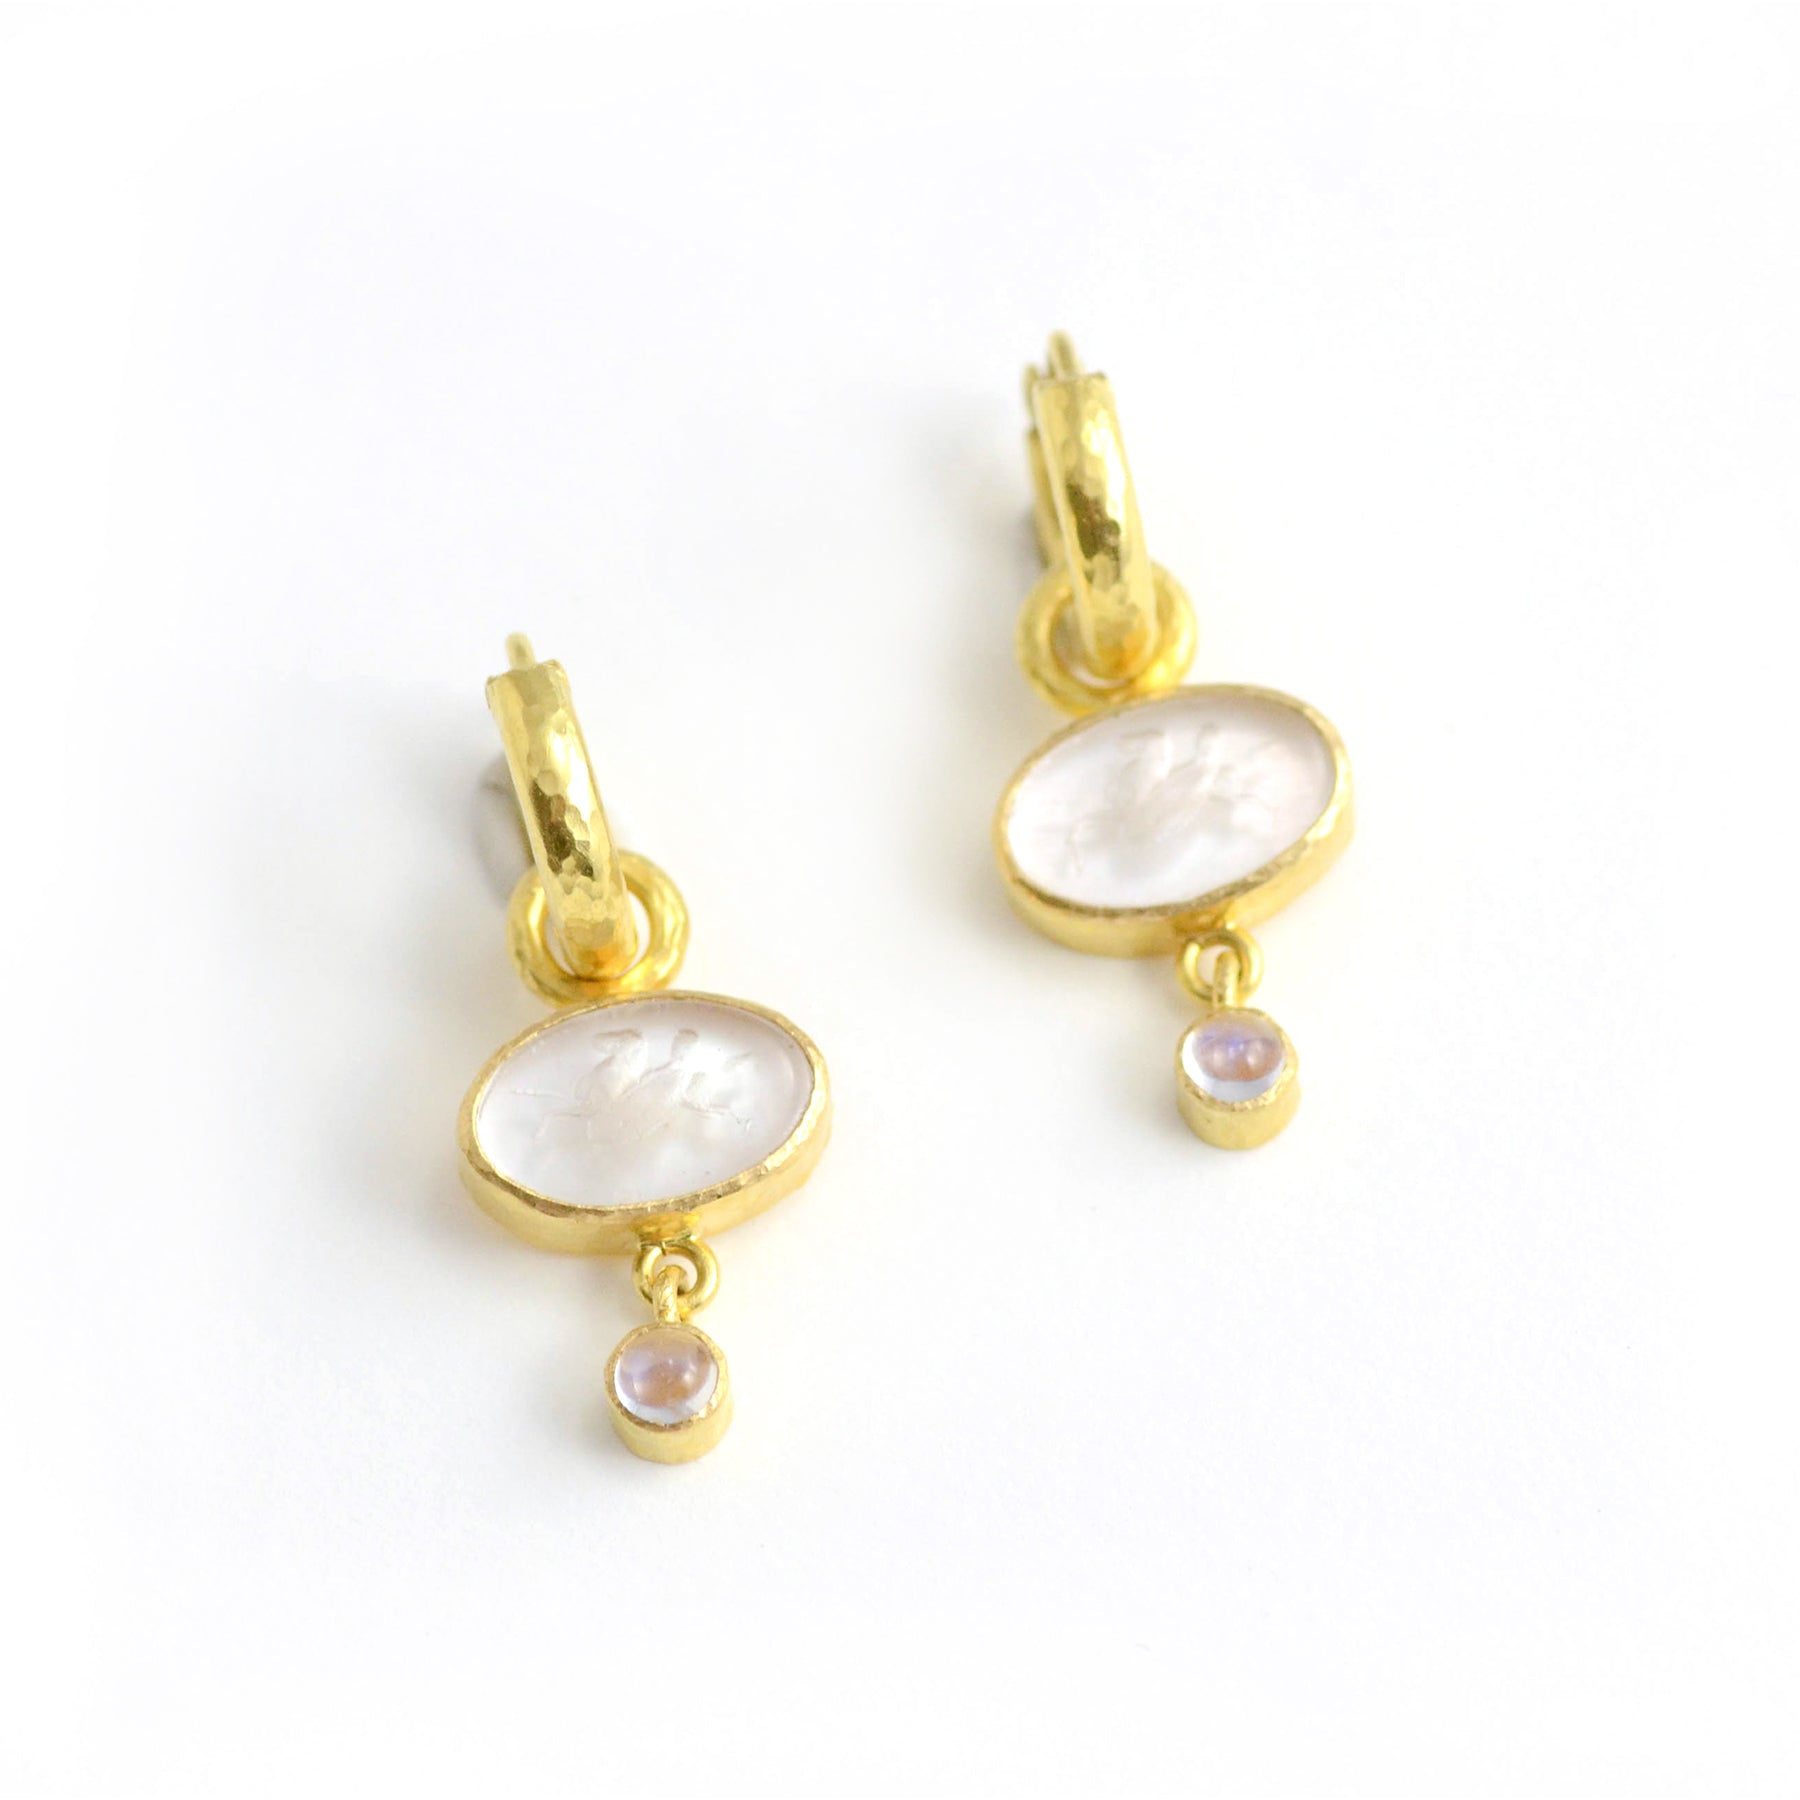 Elizabeth Locke Jewels earring pendants. The gorgeous Flying Pegasus Venetian glass intaglio earring pendants are shown with Baby Hoops. Cabochon moonstone drops finish the look.